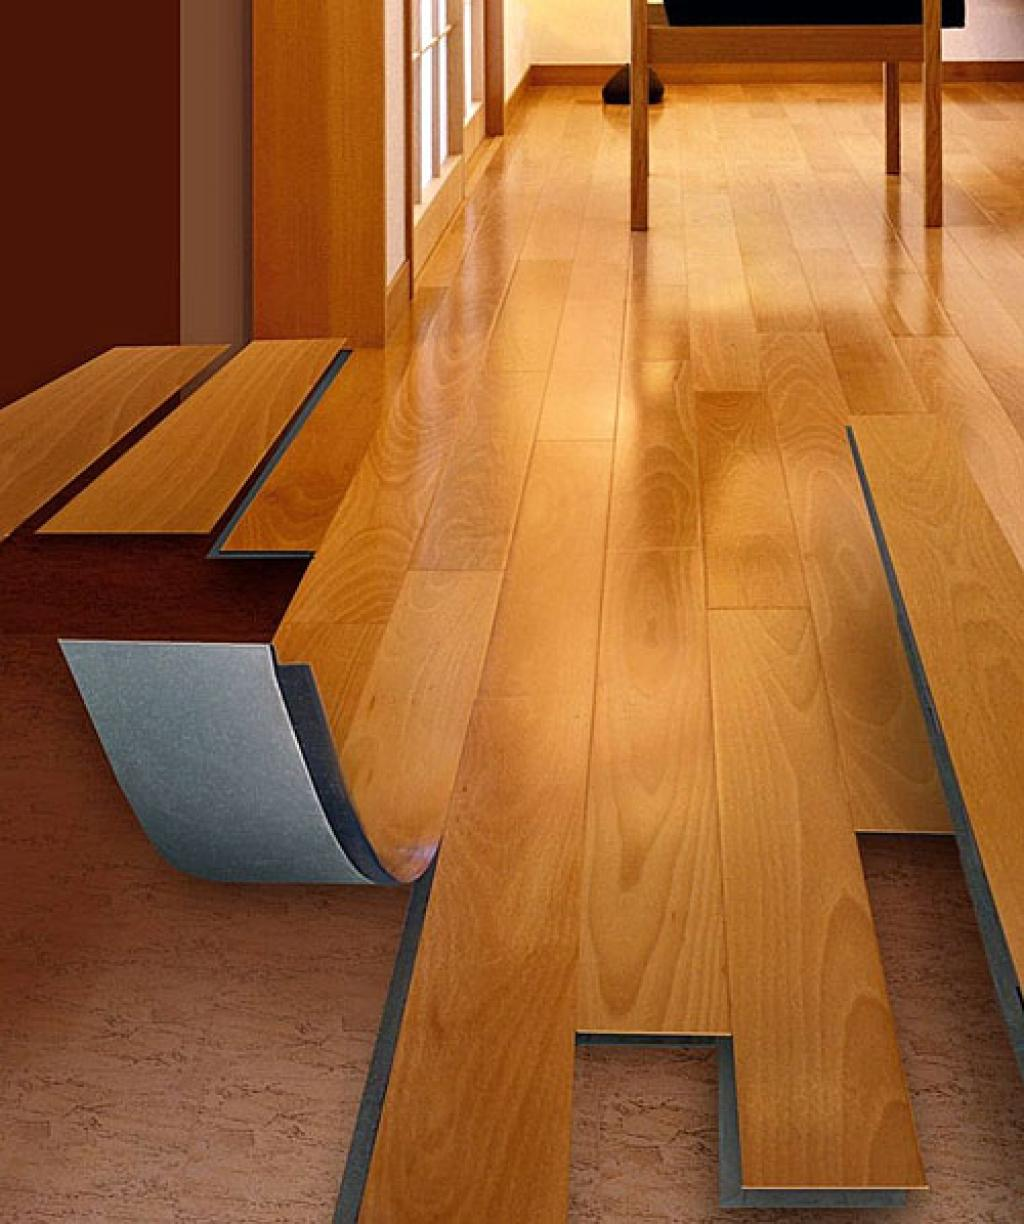 Installing Engineered Hardwood Floors Images